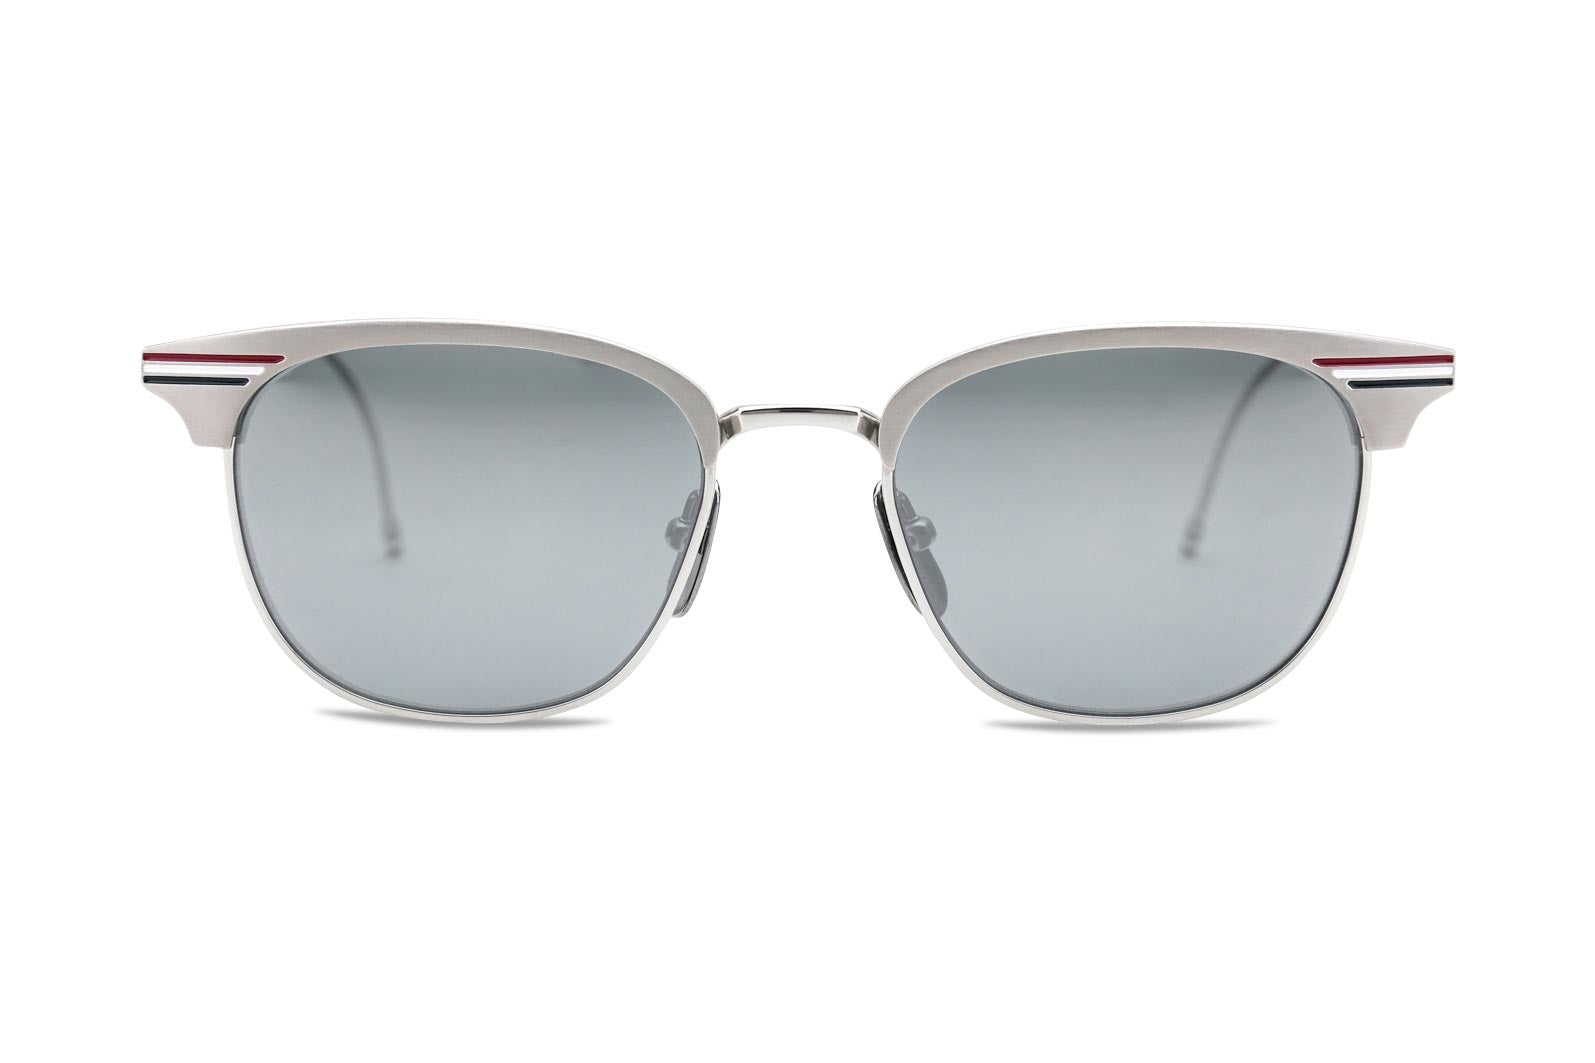 Thom Browne TB-104 sunglasses